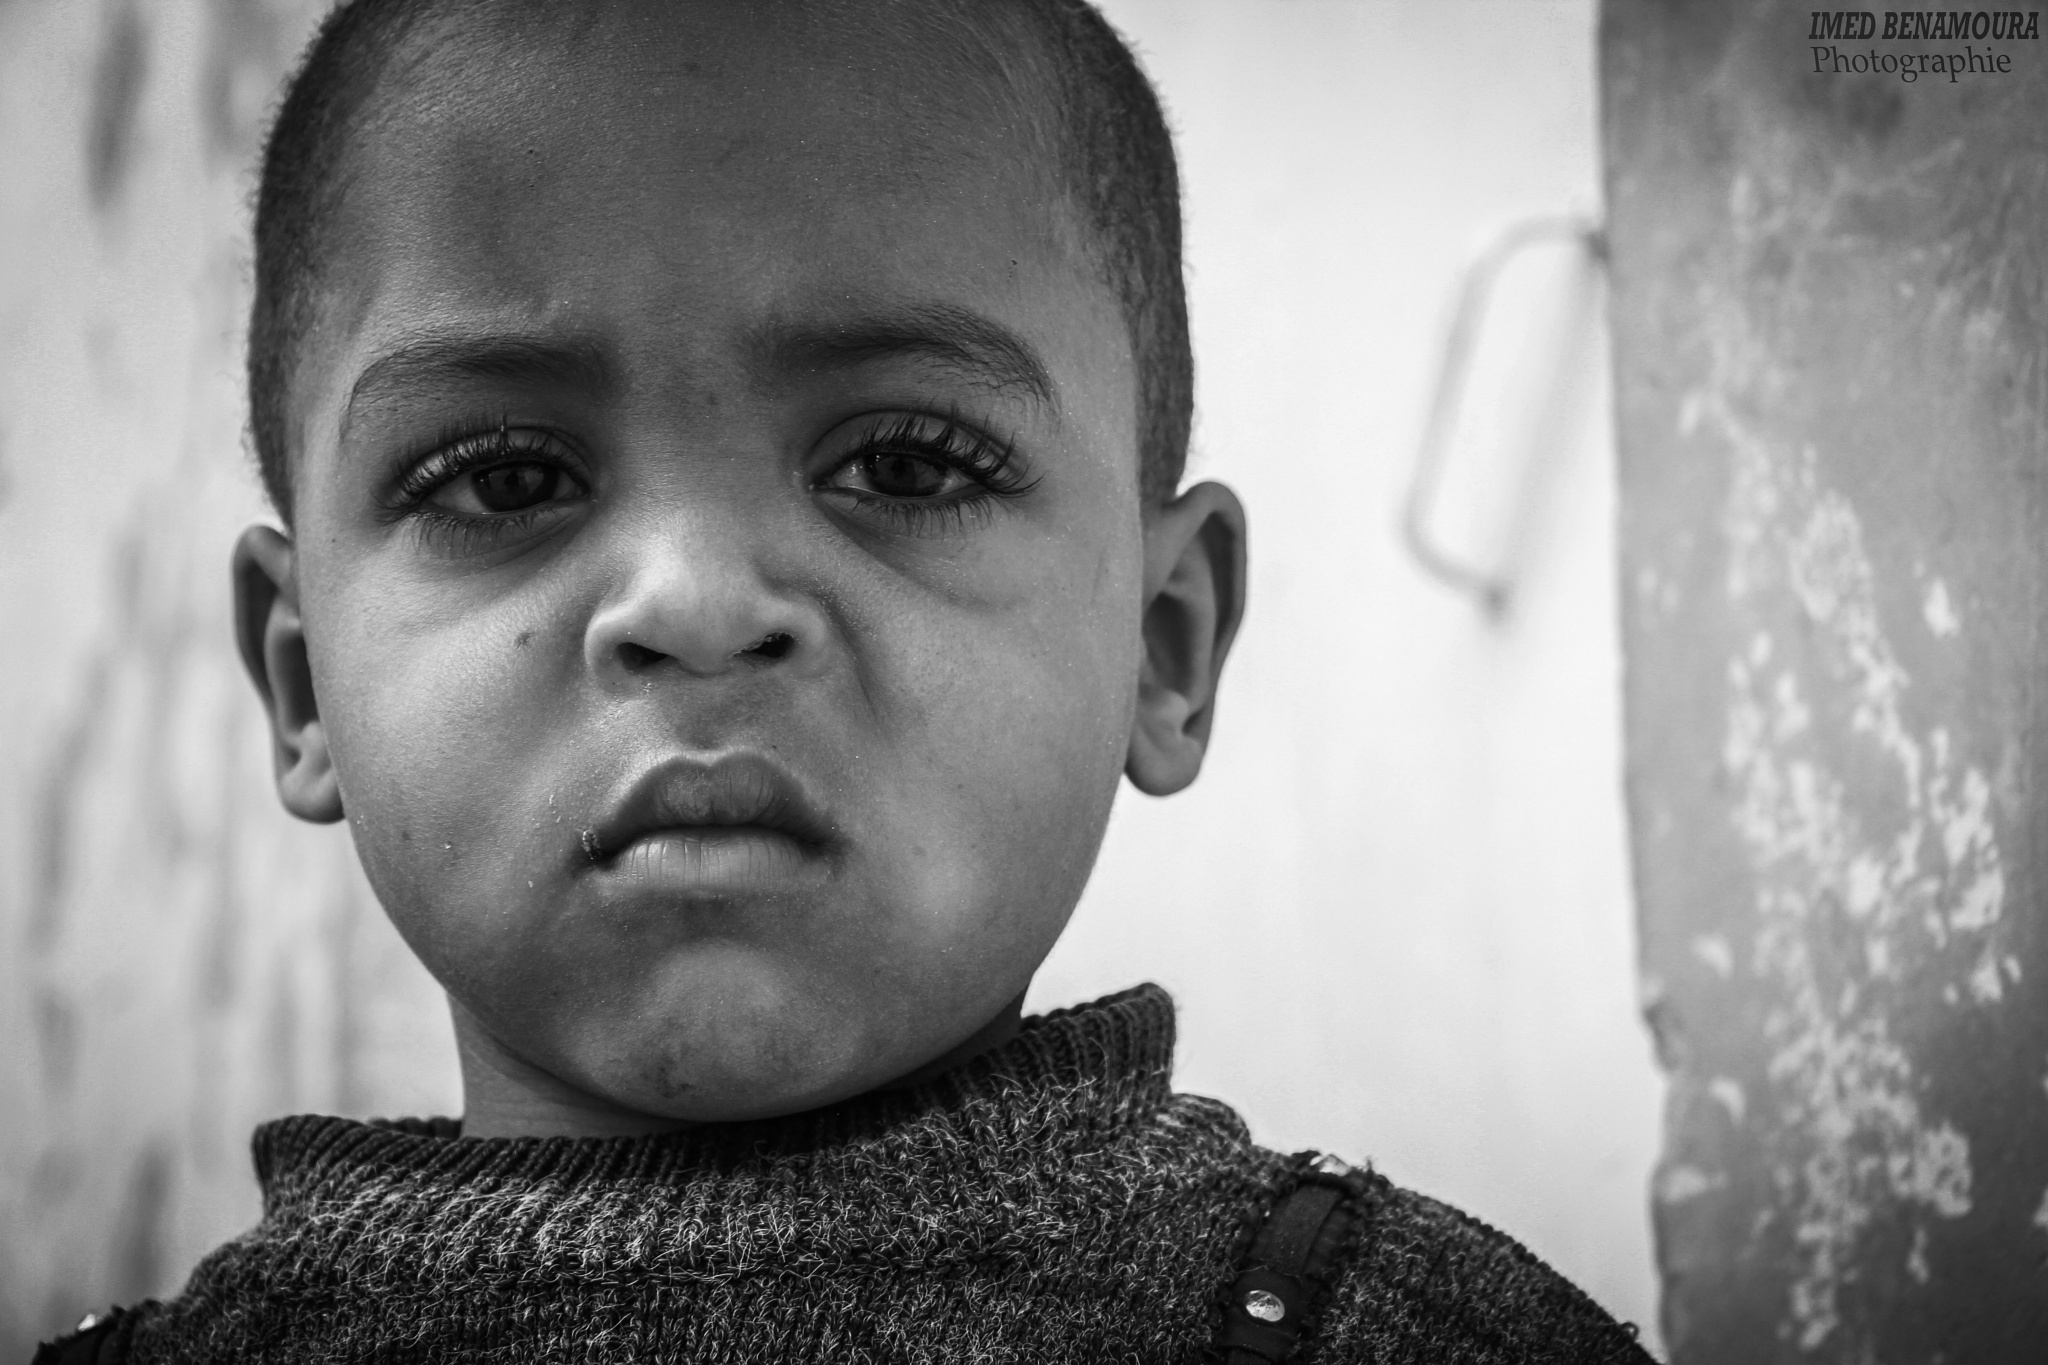 """black and white """"look at the world through the eyes of a child"""" by IMEDBphotography"""